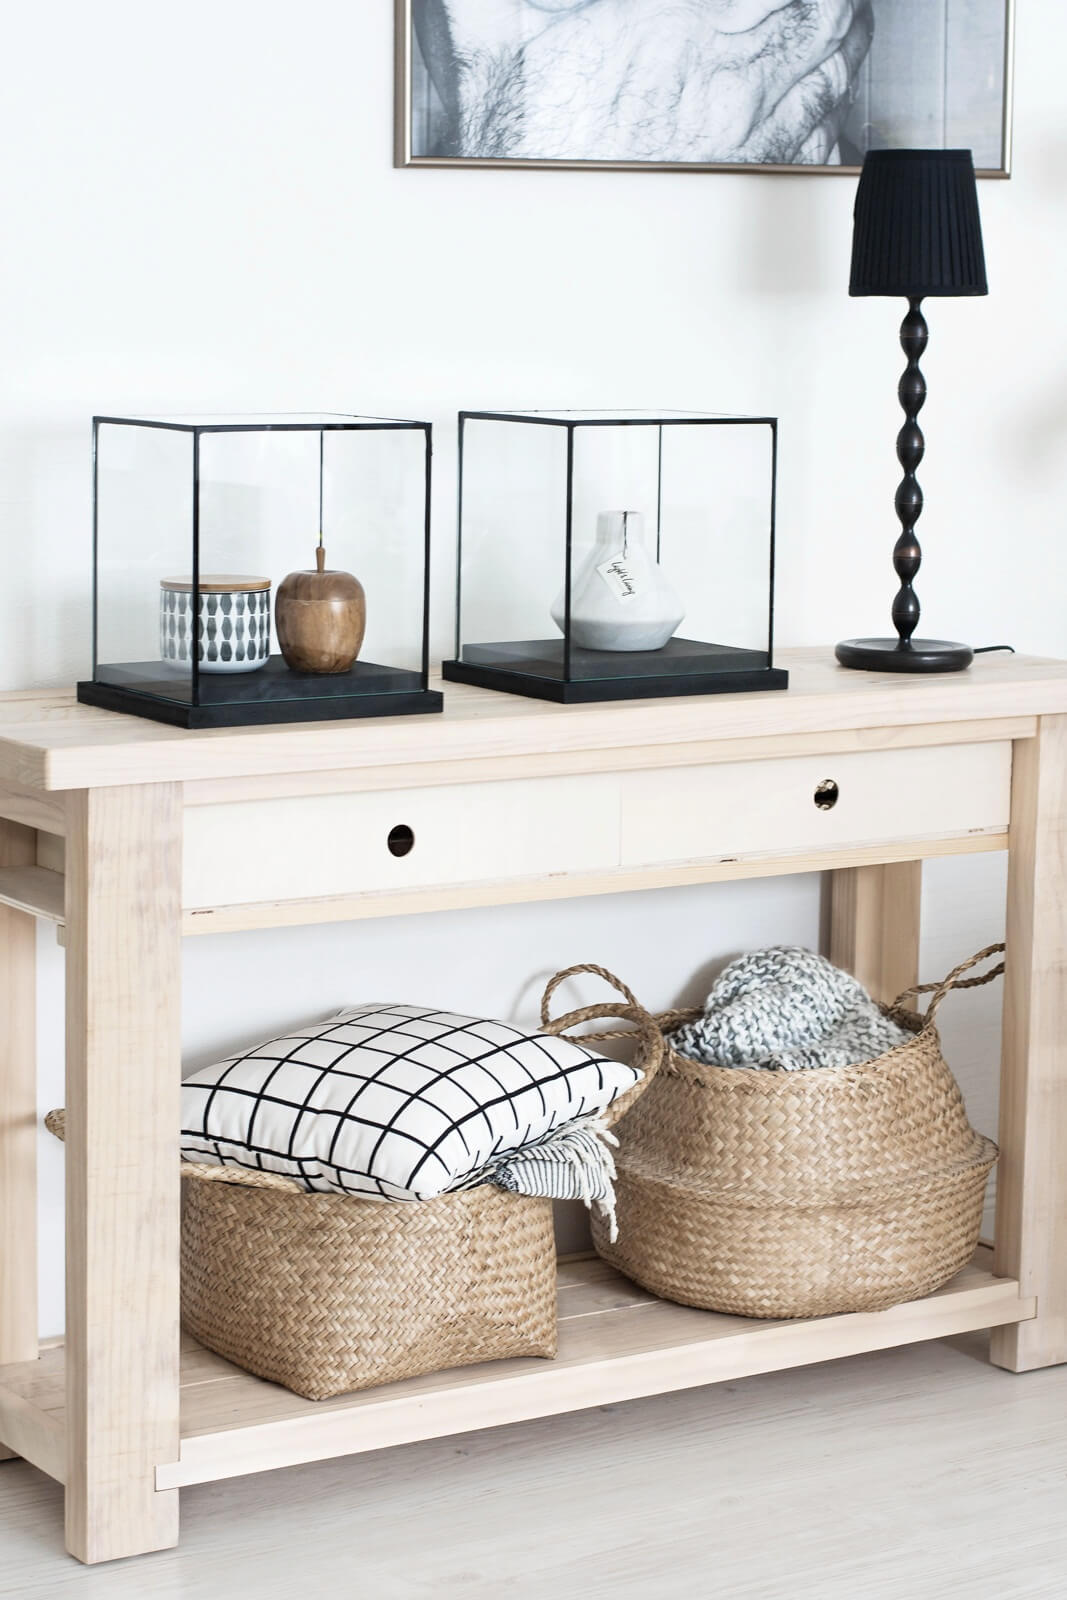 Die schoensten Interior Deco DIY - lindalovesde